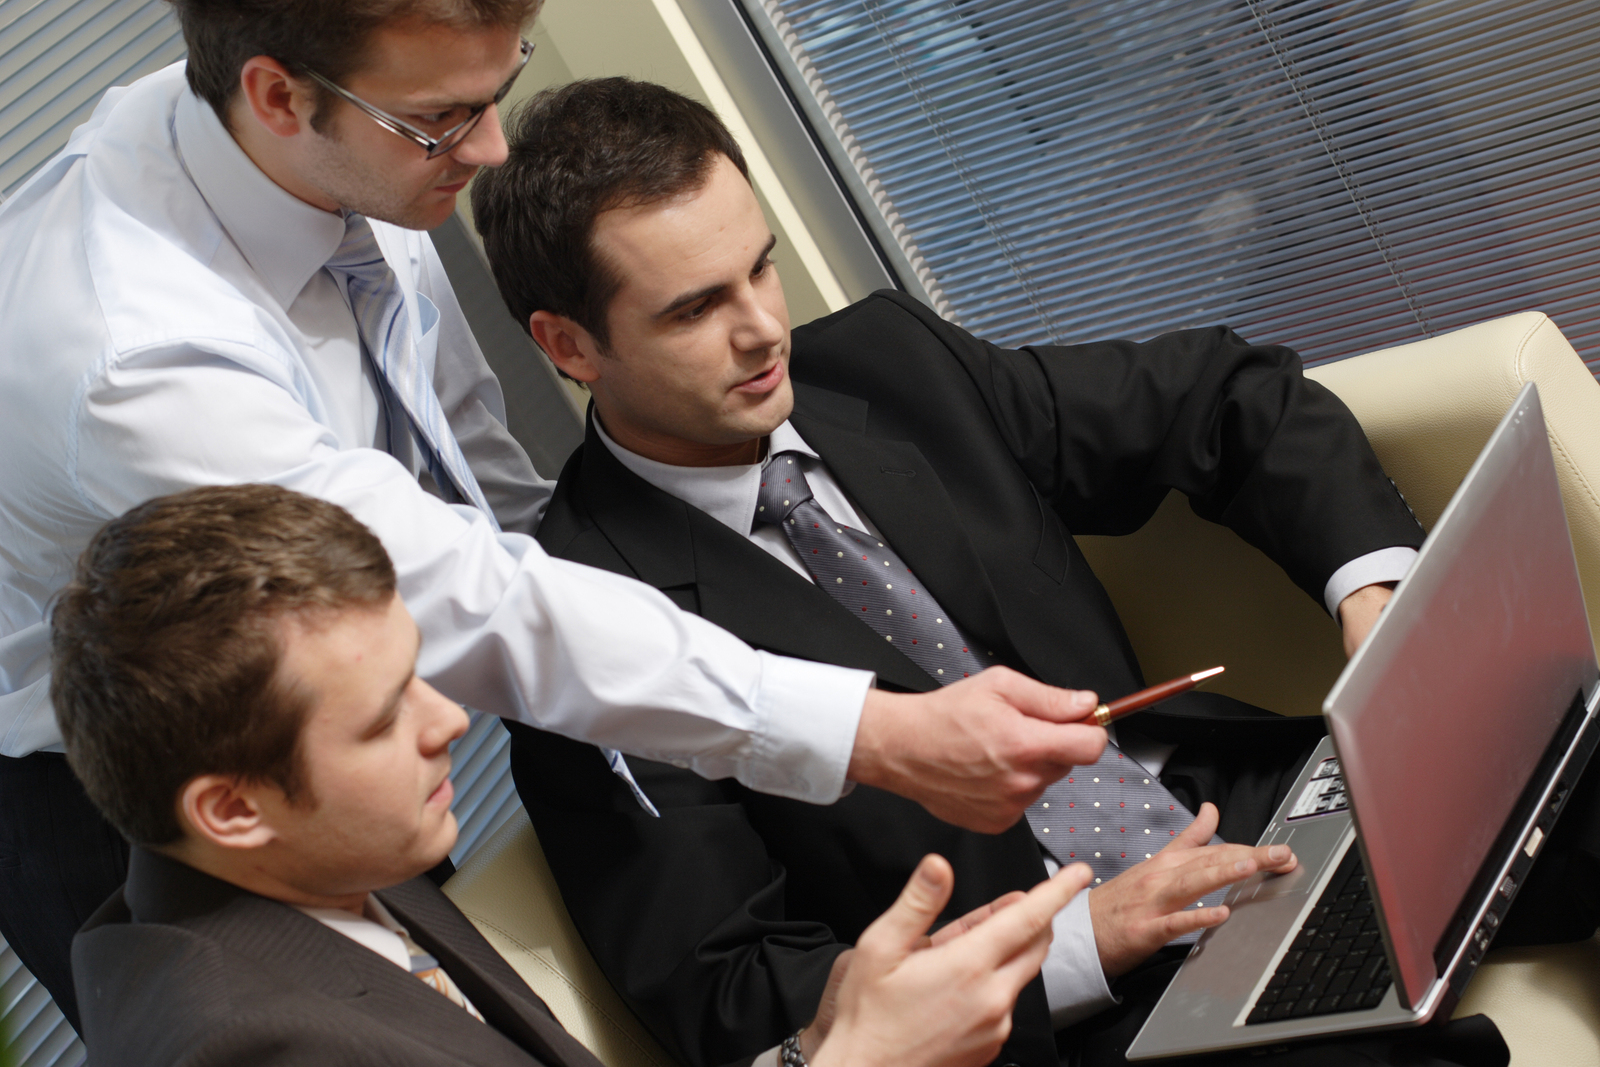 young-business-men-working-with-laptop